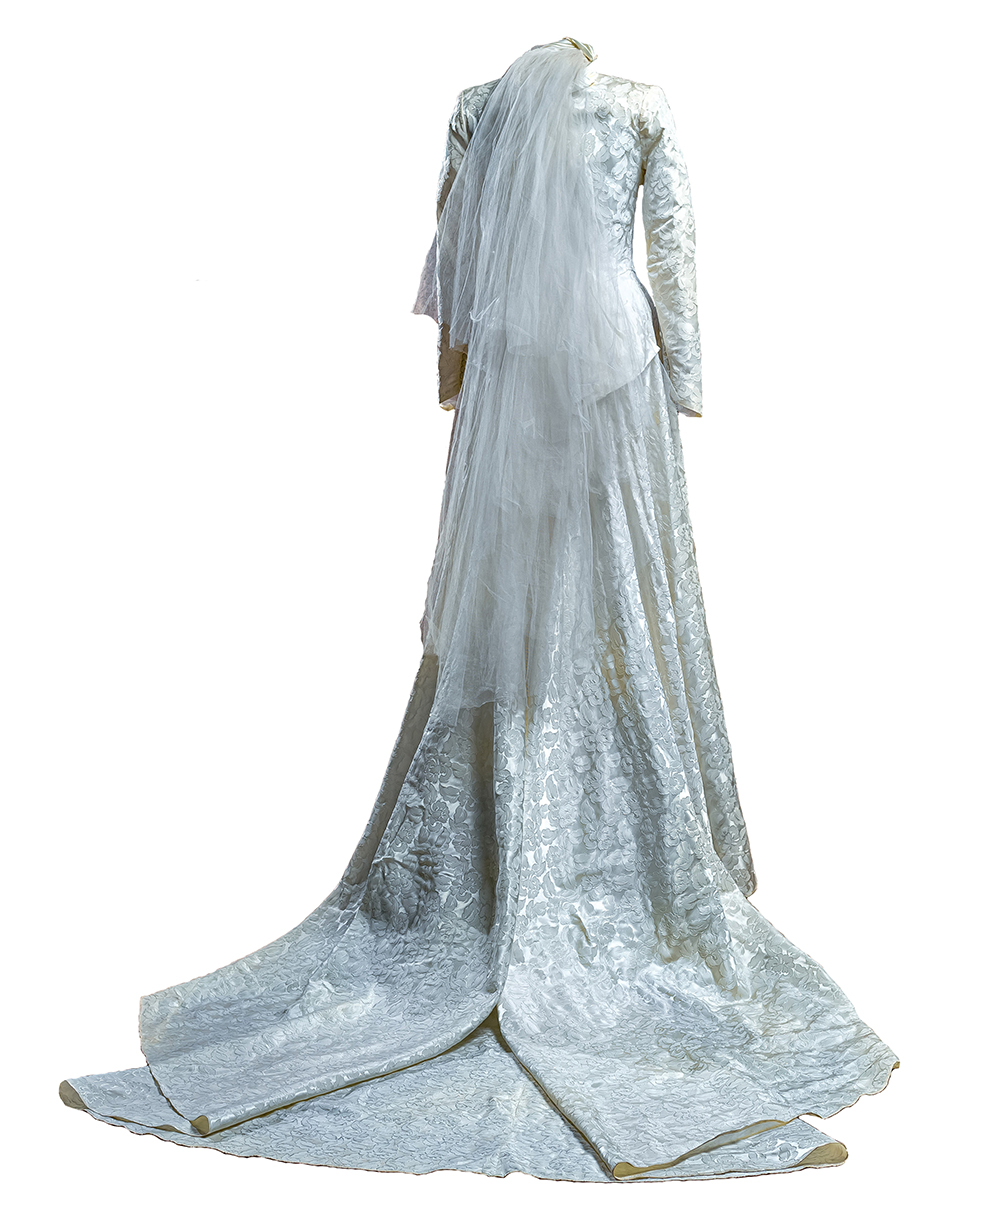 Back of Jacquard leaf-patterned, ivory, Skinner satin wedding gown with three quarter length veil and train